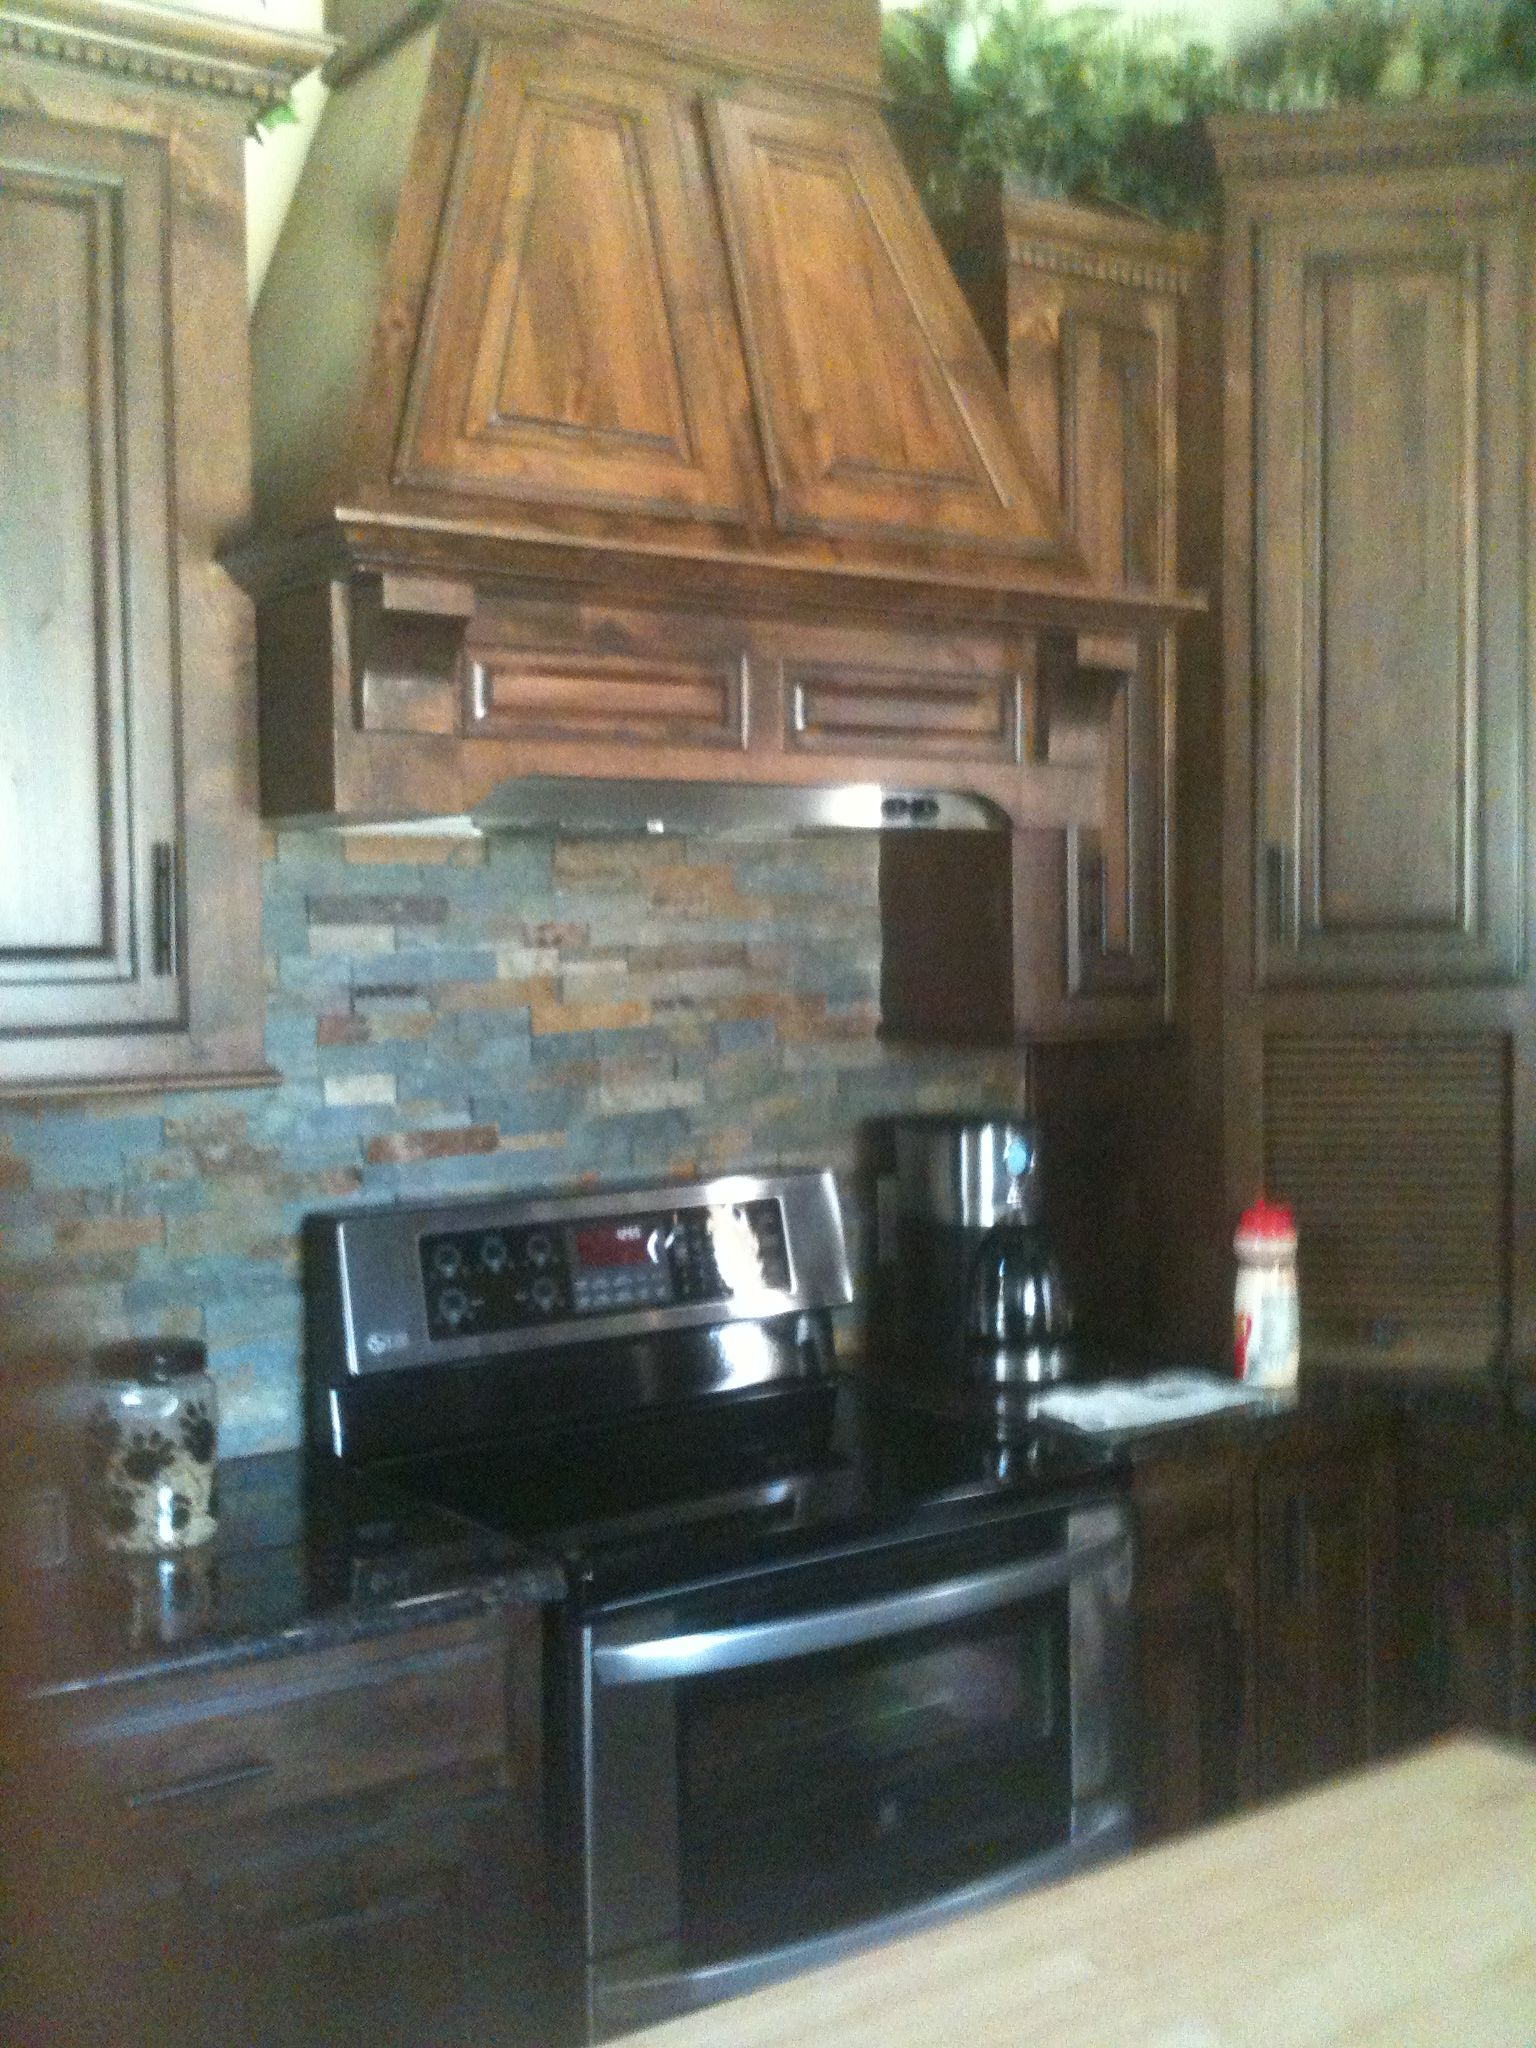 kitchen remodel stone backsplash and wood vent hood harper construction tx kitchen remodel on kitchen remodel vent hood id=78904